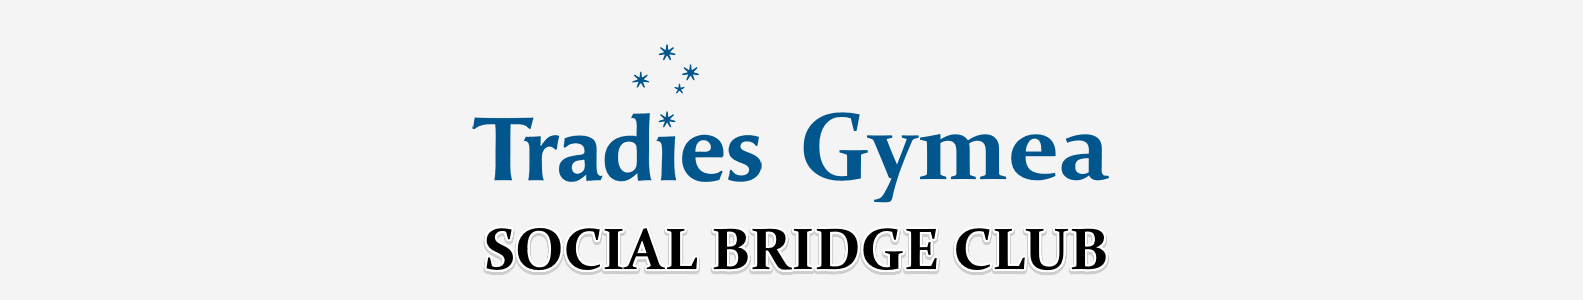 Results from Tradies Gymea games